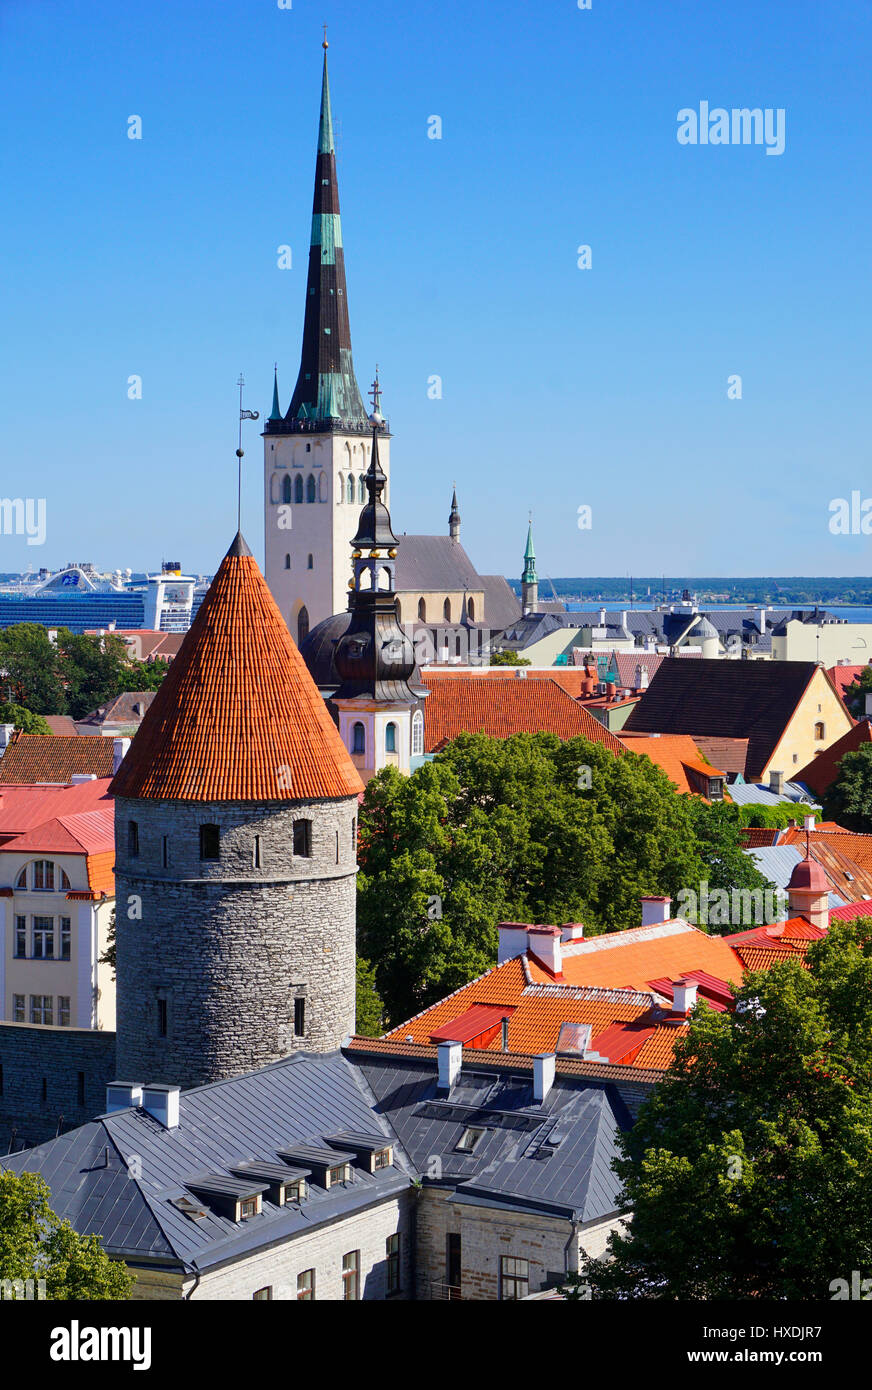 Tallinn, Estonia, steeples and towers. - Stock Image